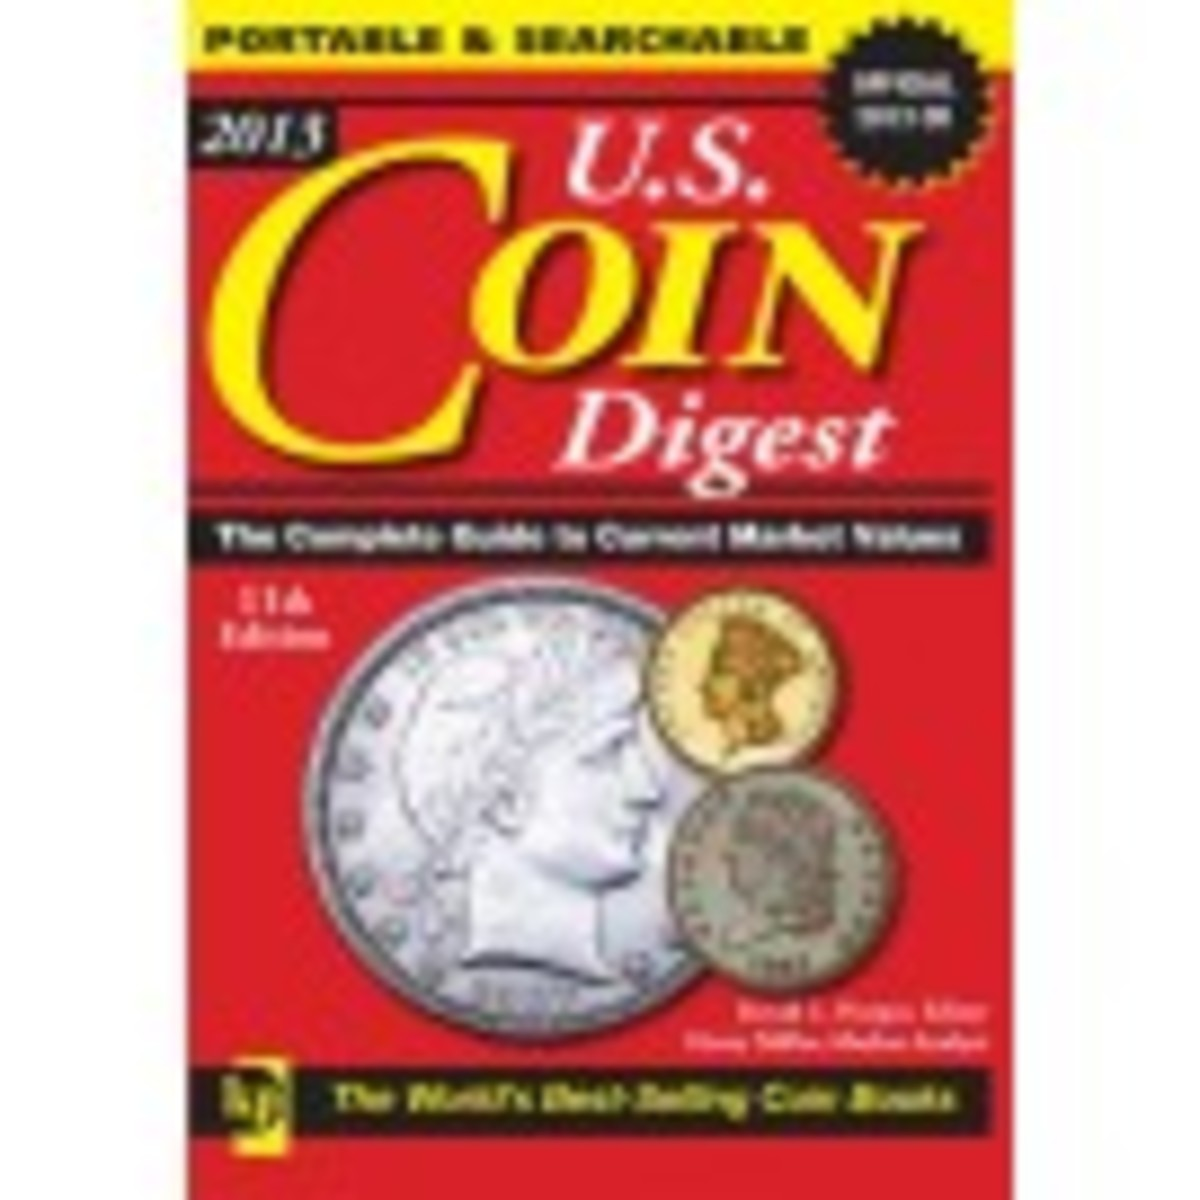 2013 U.S. Coin Digest CD